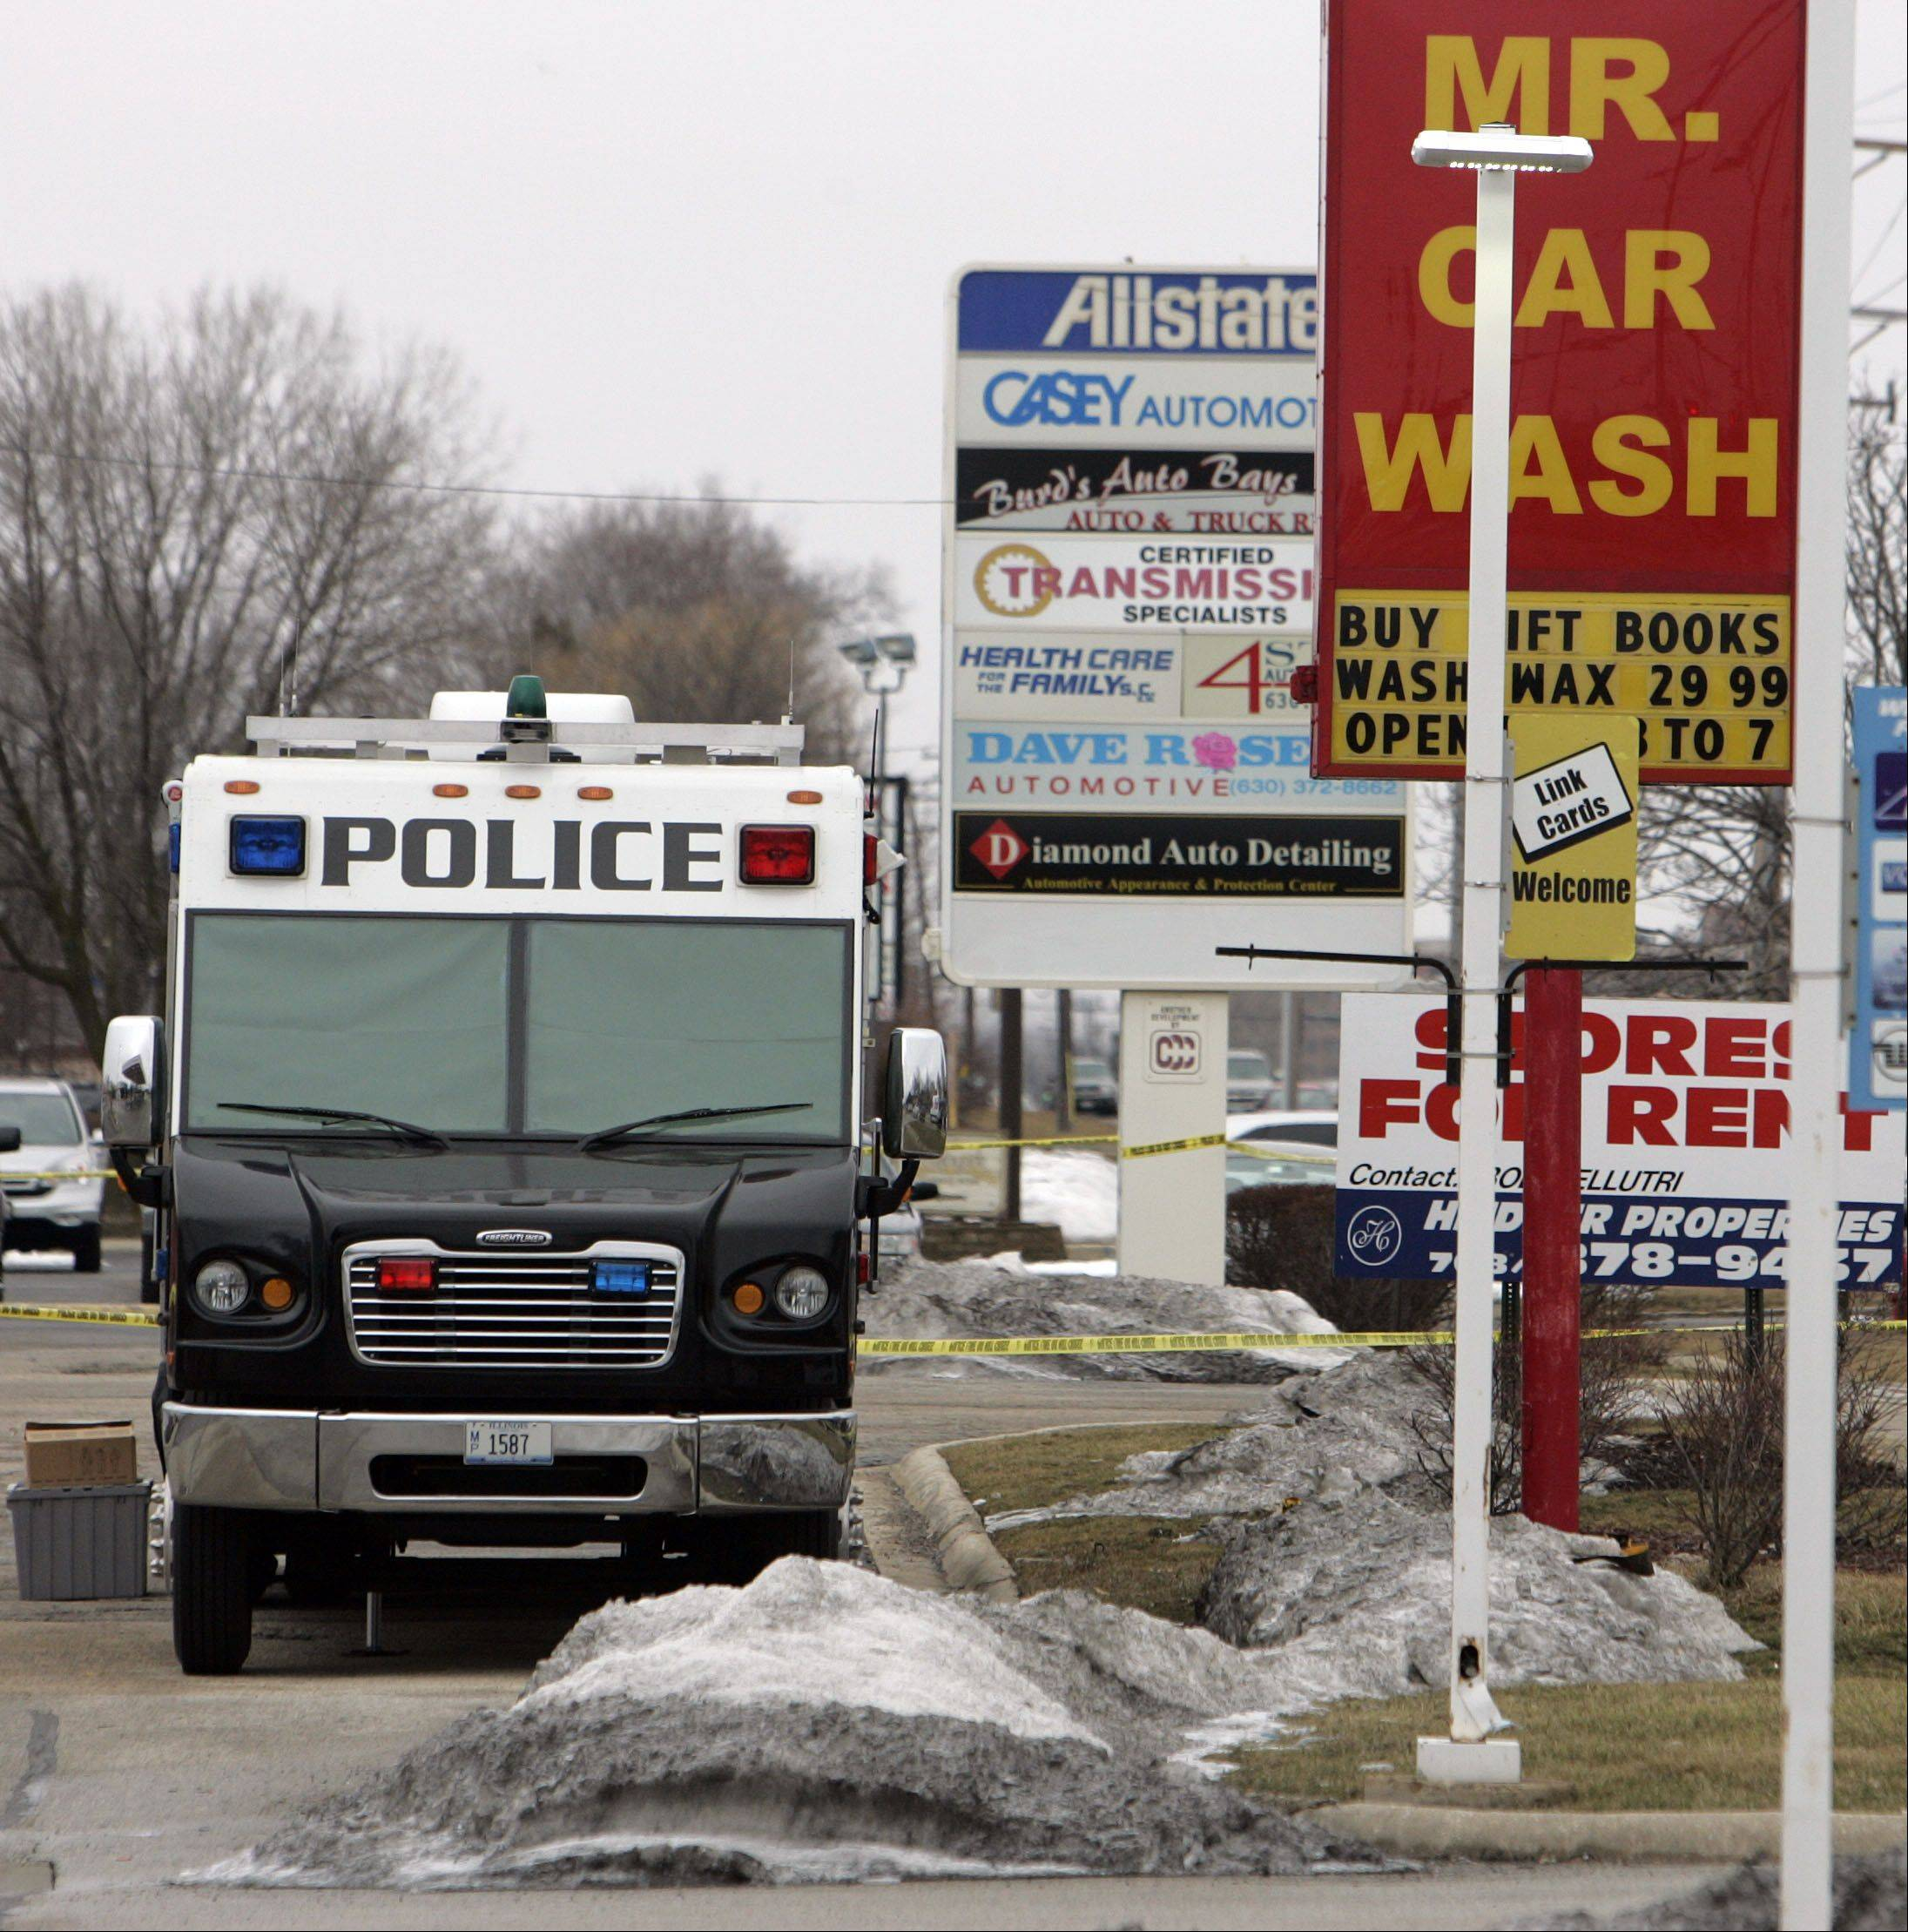 Streamwood police work the scene where a gas station clerk was stabbed and killed early Saturday morning in Streamwood, police said.